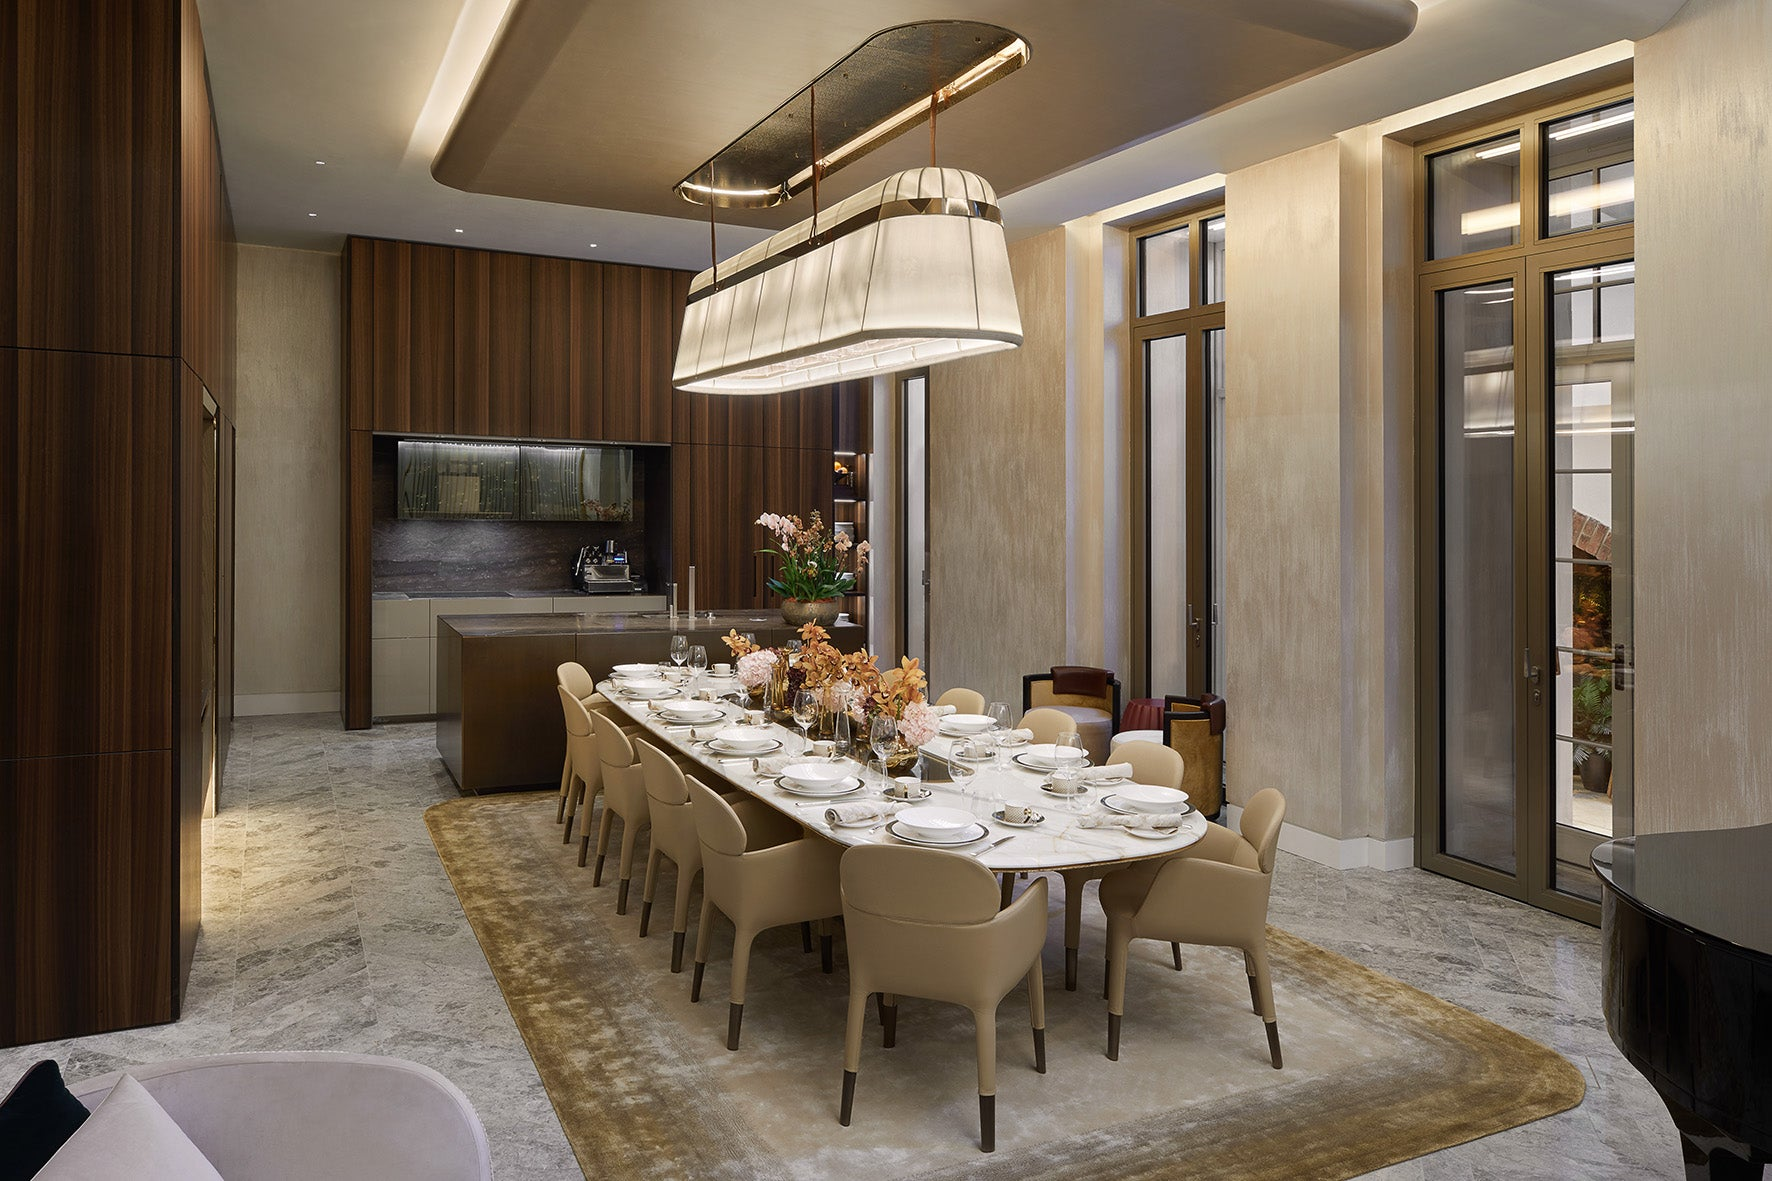 Mayfair Park Residences, Clivedale London, interiors designed by Jouin Manku